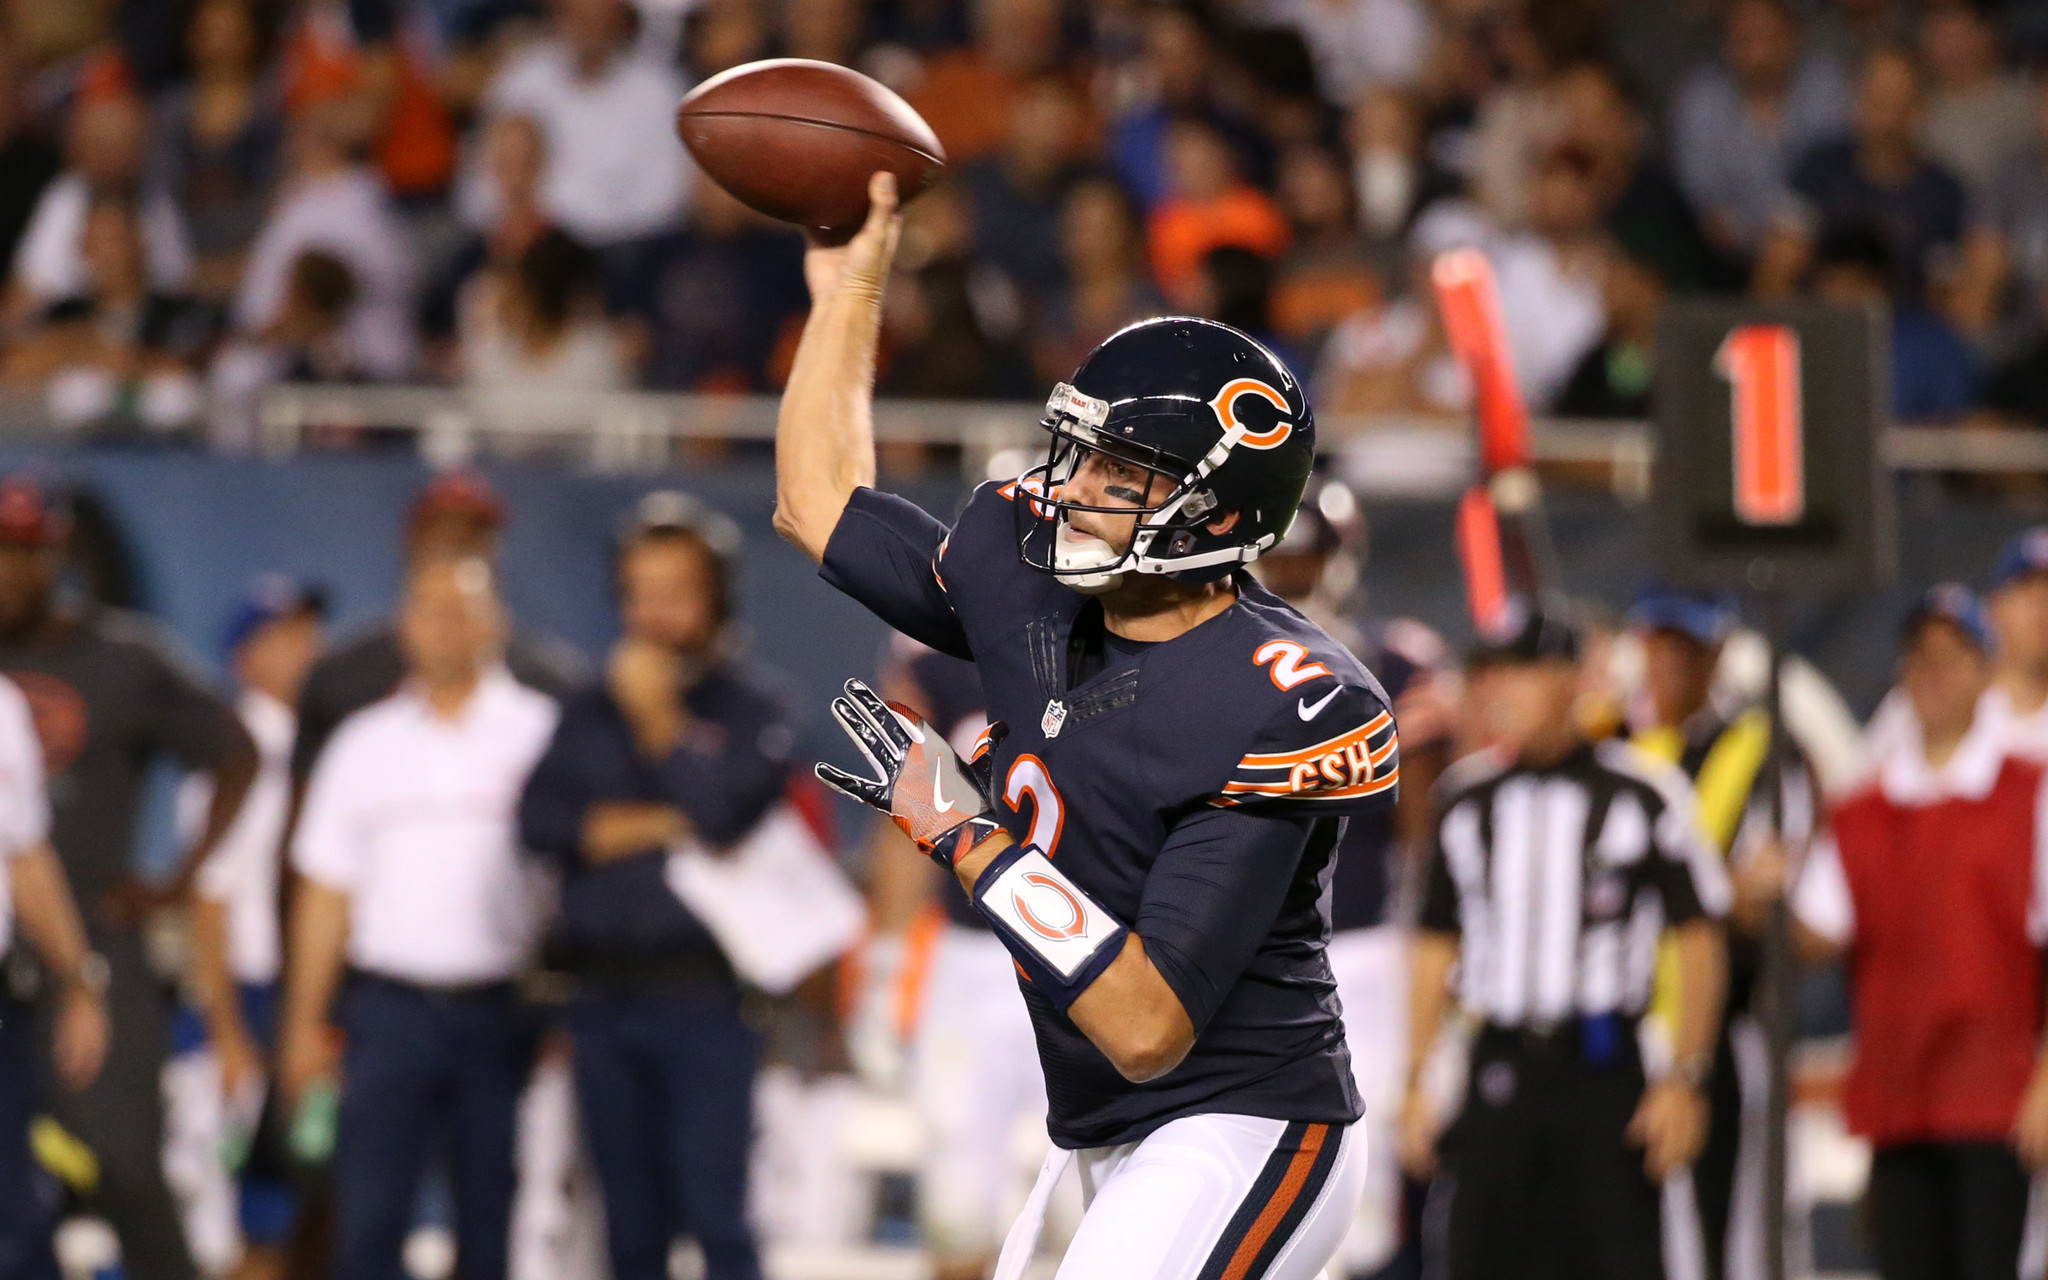 Ct-brian-hoyer-takes-over-bears-spt-0923-20160922